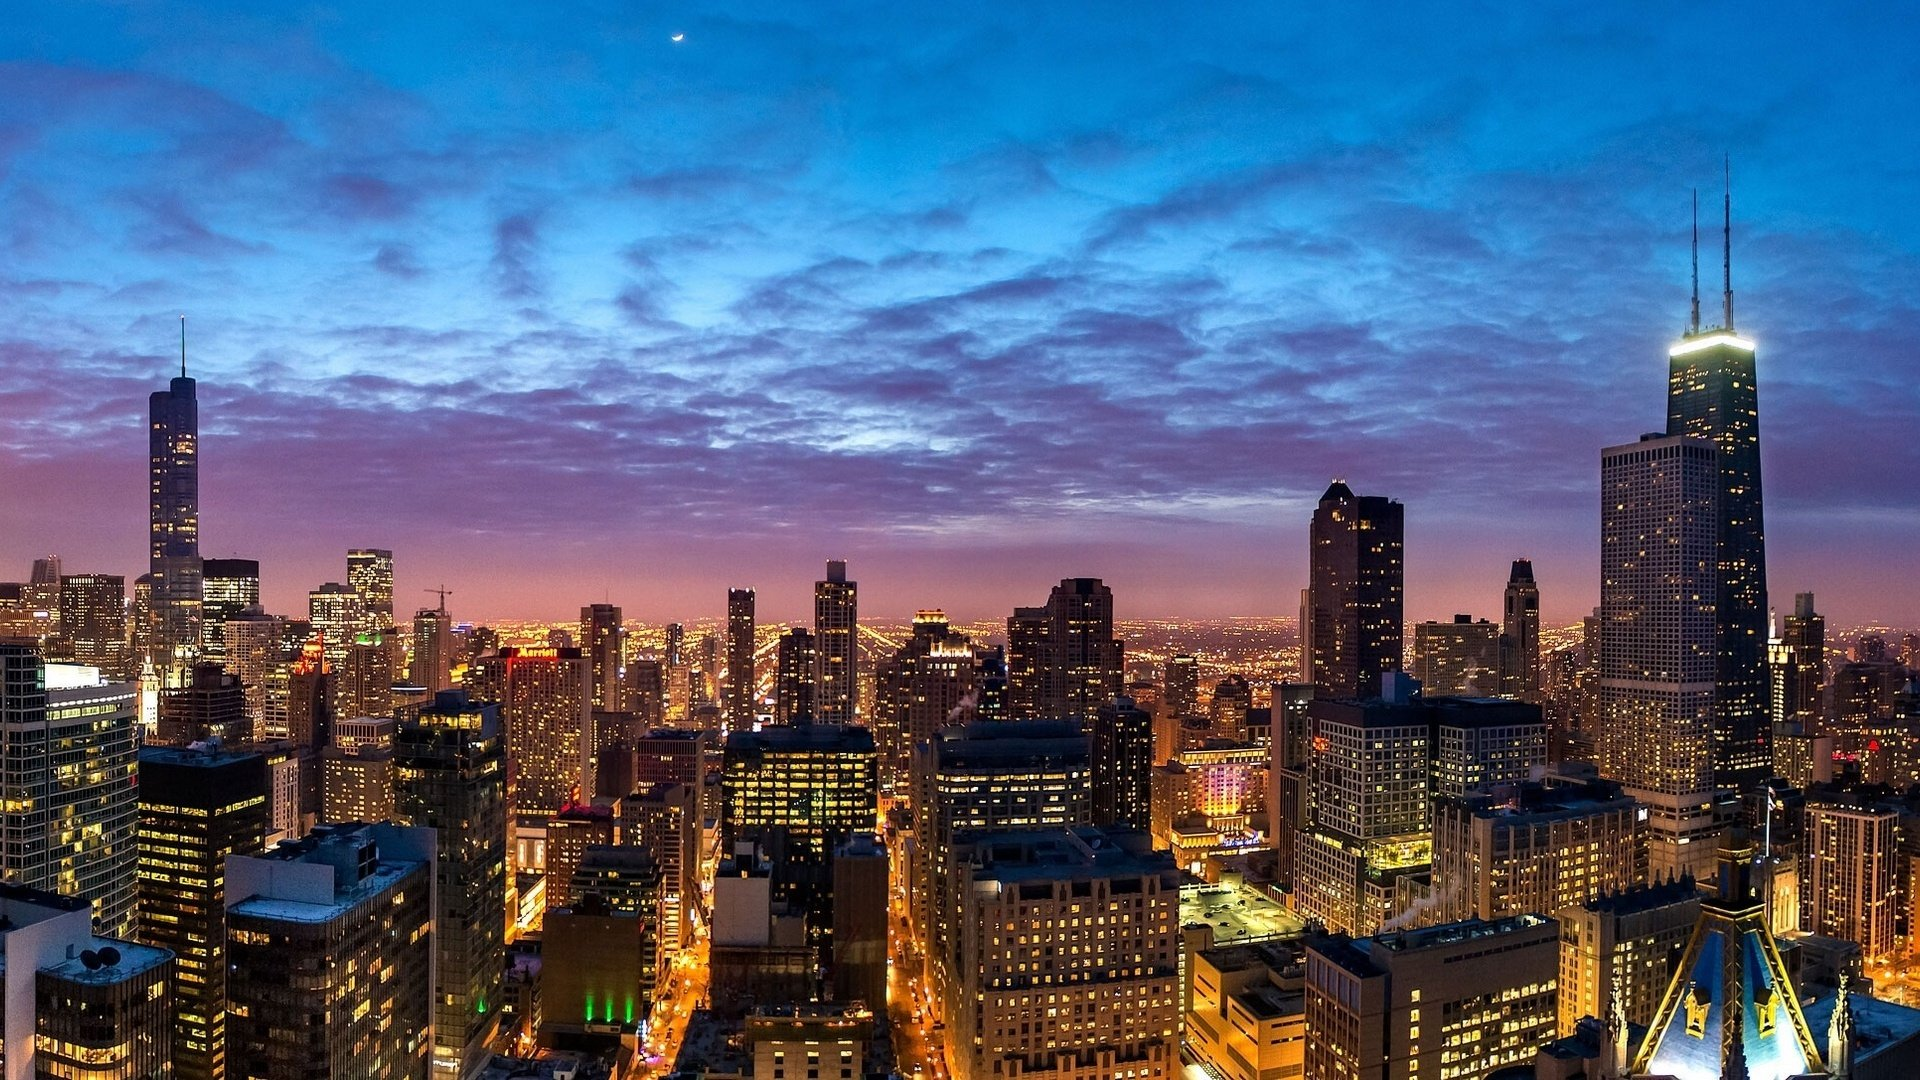 Chicago HD Wallpaper Background Image 1920x1080 ID426554 1920x1080